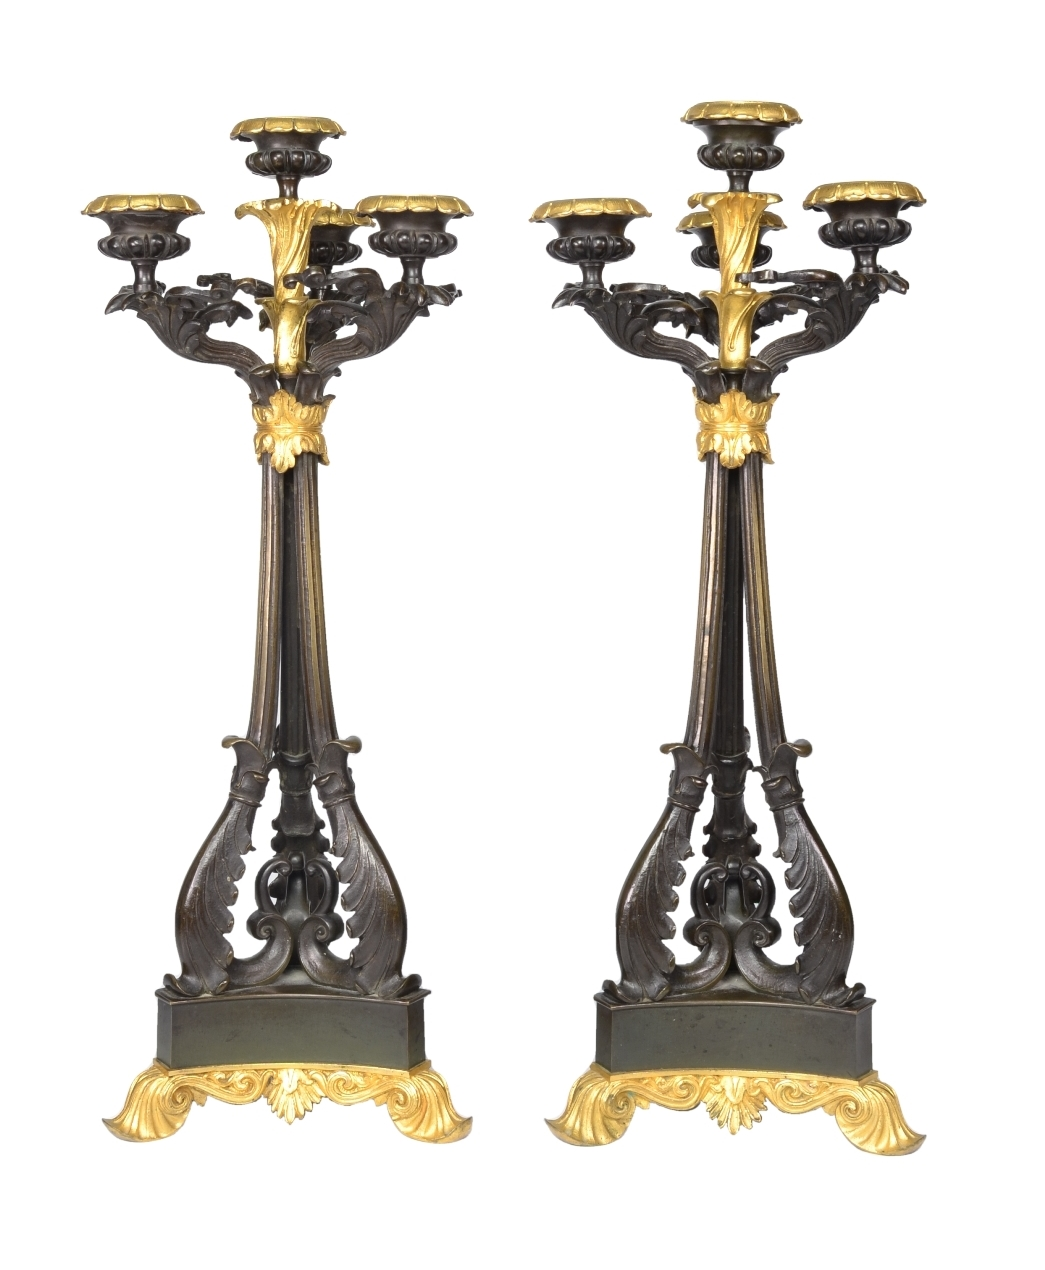 Pair of Louis-Philippe Bronze and Ormolu Candelabra, c. 1840